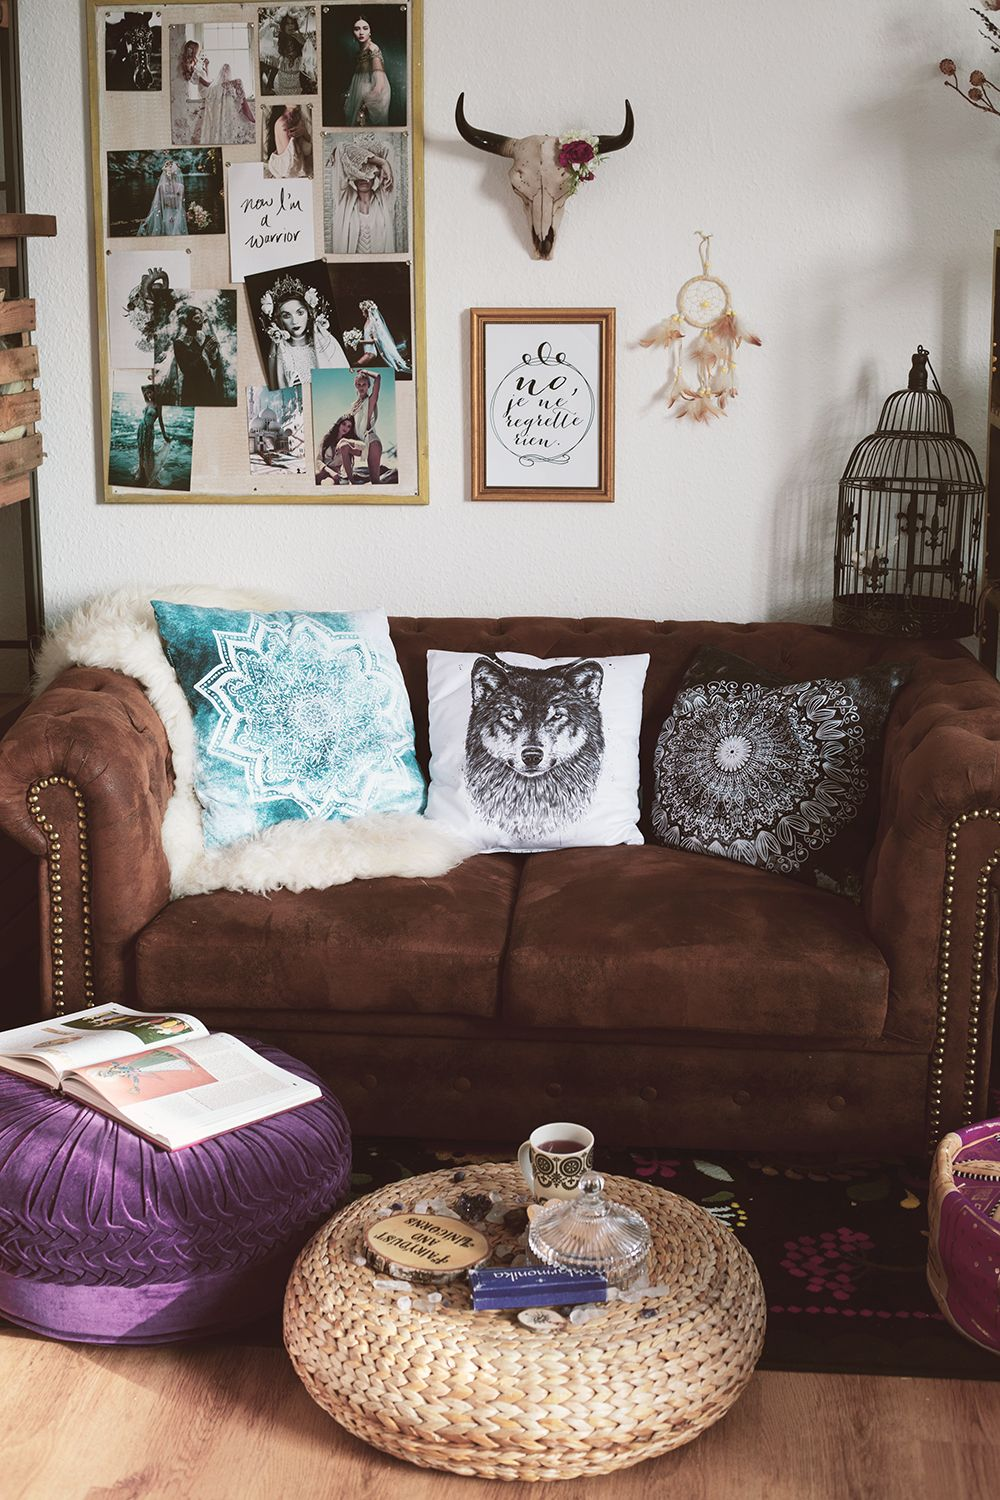 Einrichtung Wohnzimmer Türkisch Boho Living Room With Leather Couch And Pretty Pillows Where I